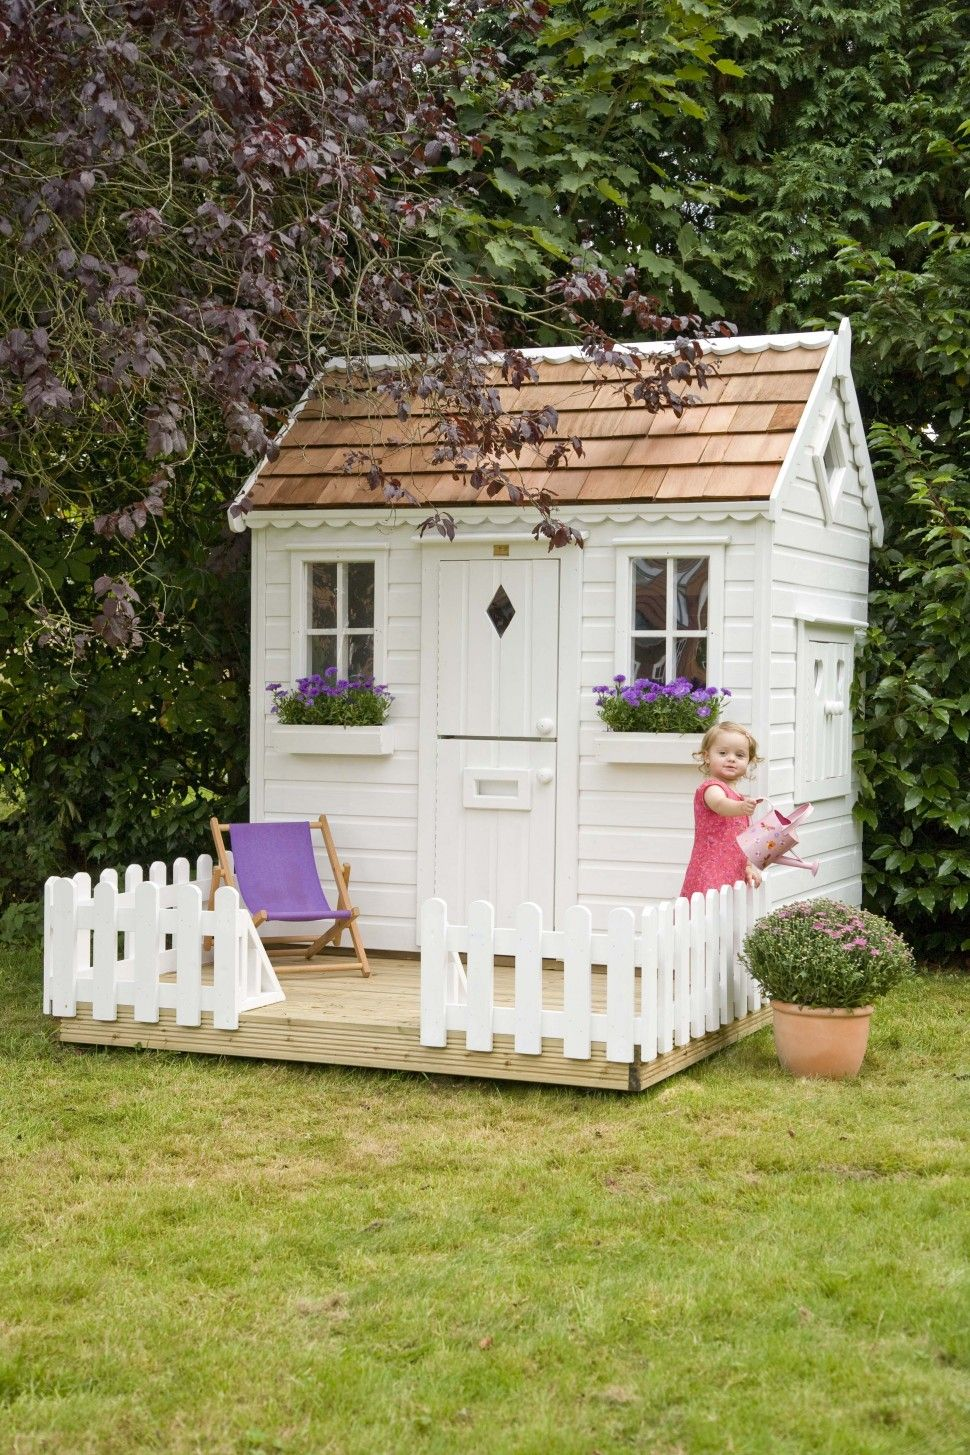 Cool Modern Simple Wooden House Designs To Be Inspired By: Lawn & Garden:Amazing White Modern Painted Wood Backyard Garden Playhouse Design Ideas With